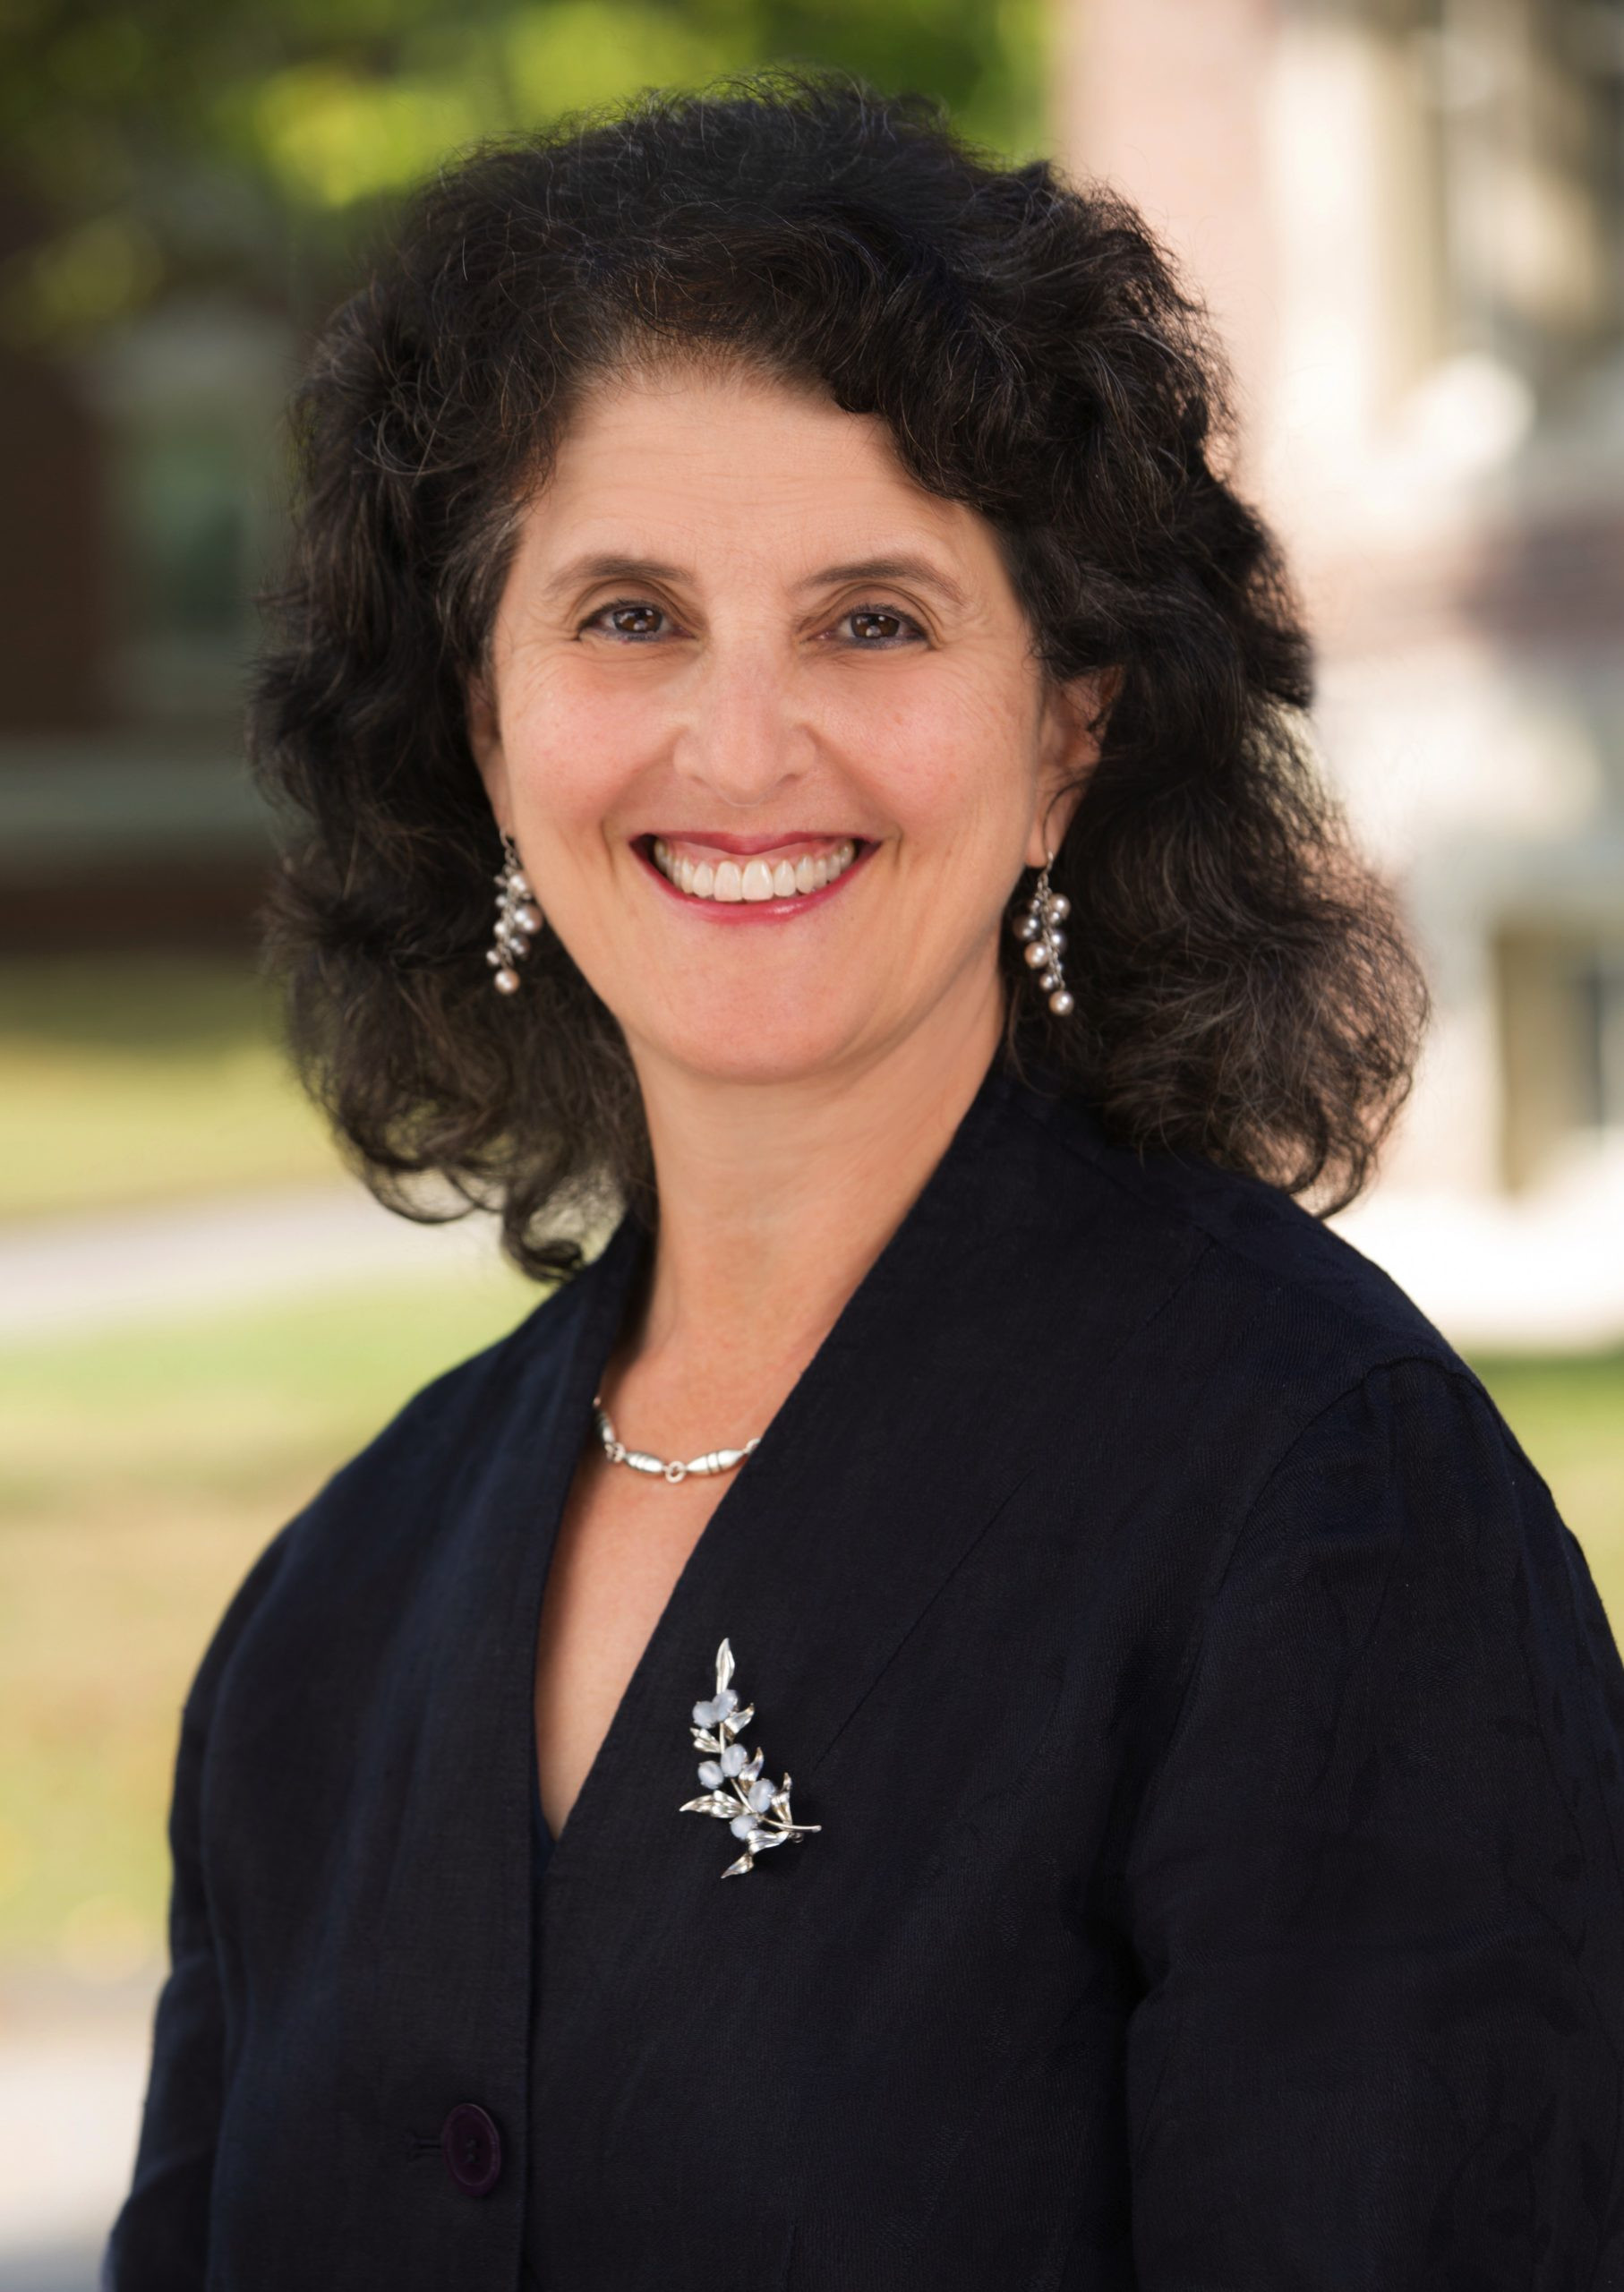 Shelly Greenfield, MD, MPH's avatar